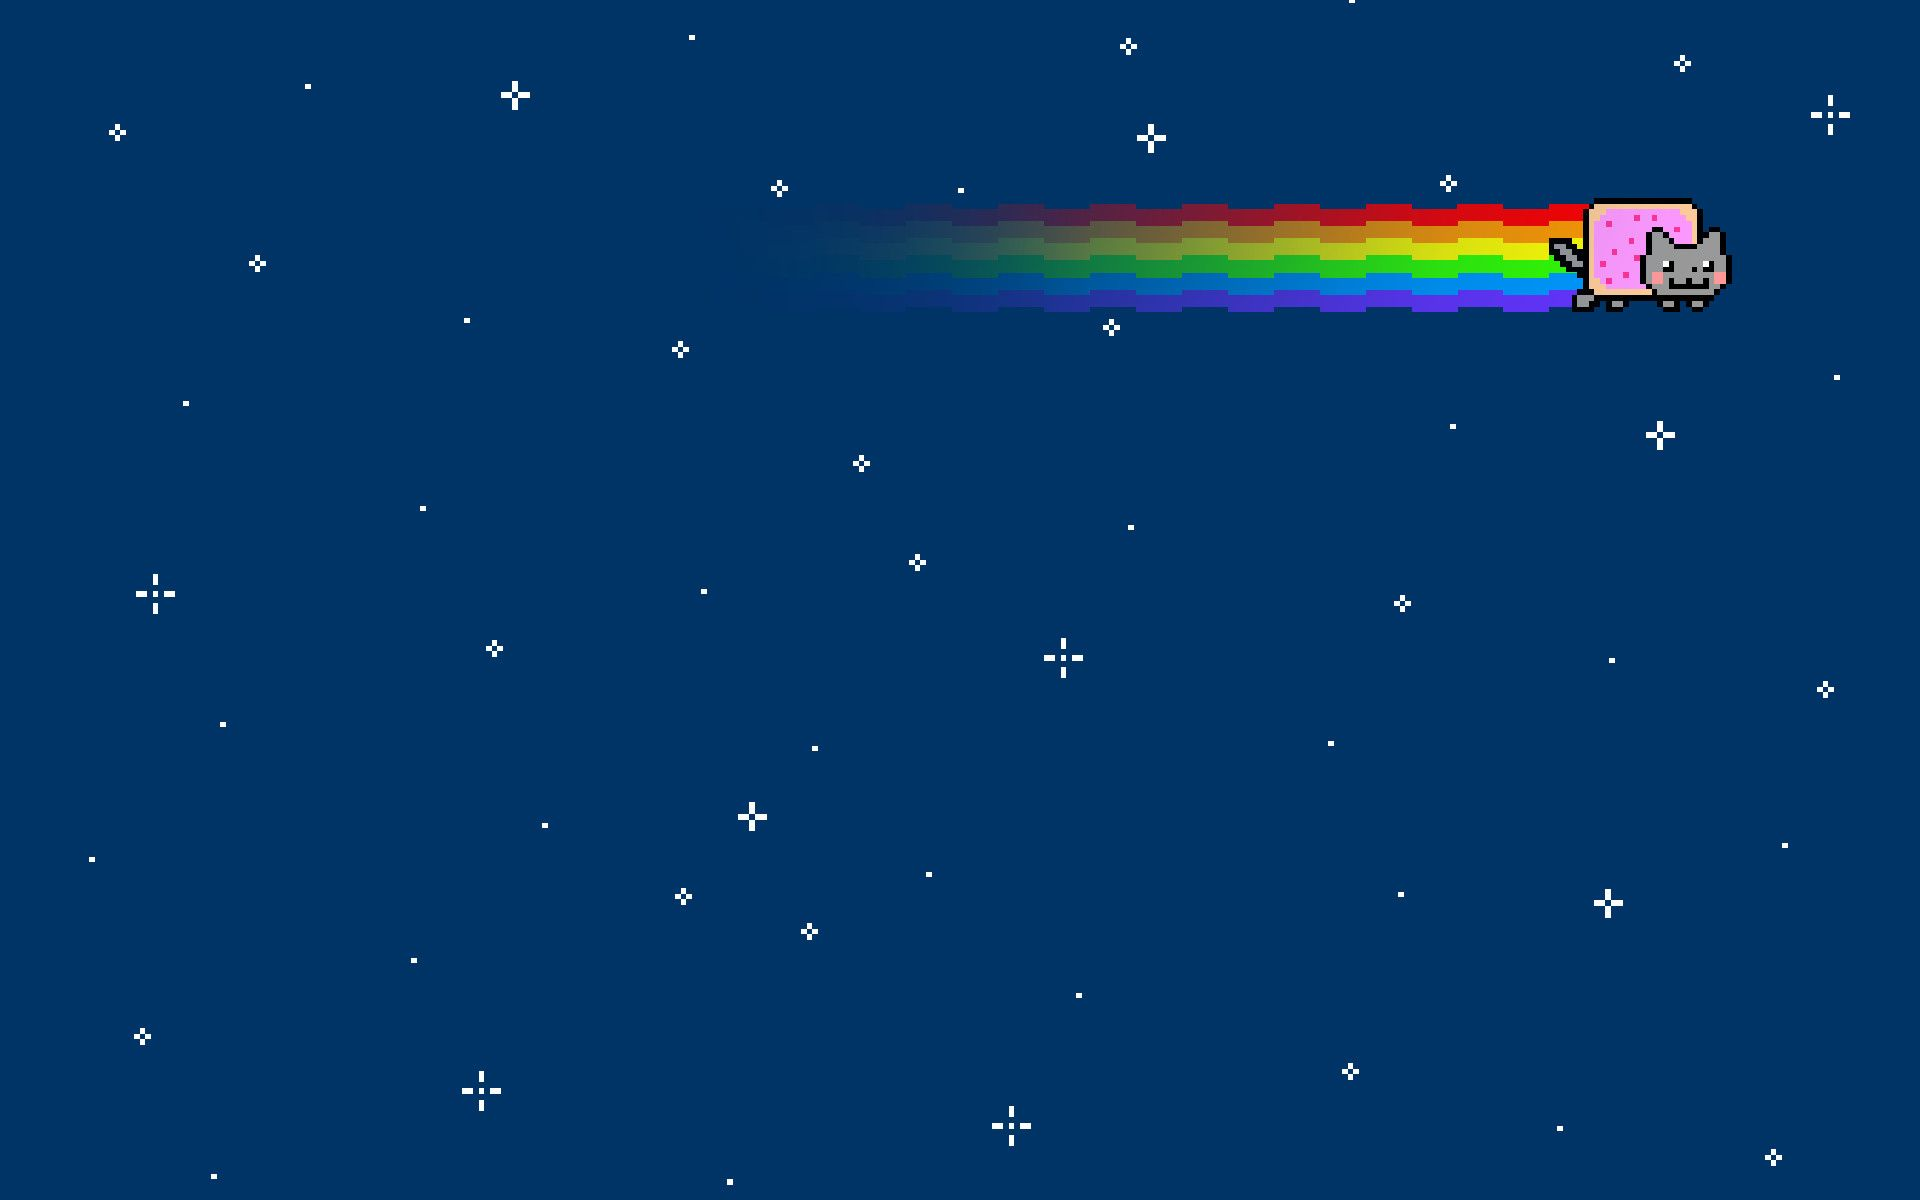 Res 1920x1200 Outer Space Cats Rainbows Nyan Cat Wallpaper 21786 Wallpaperup Cheshire Cat Wallpaper Nyan Cat Cat Wallpaper